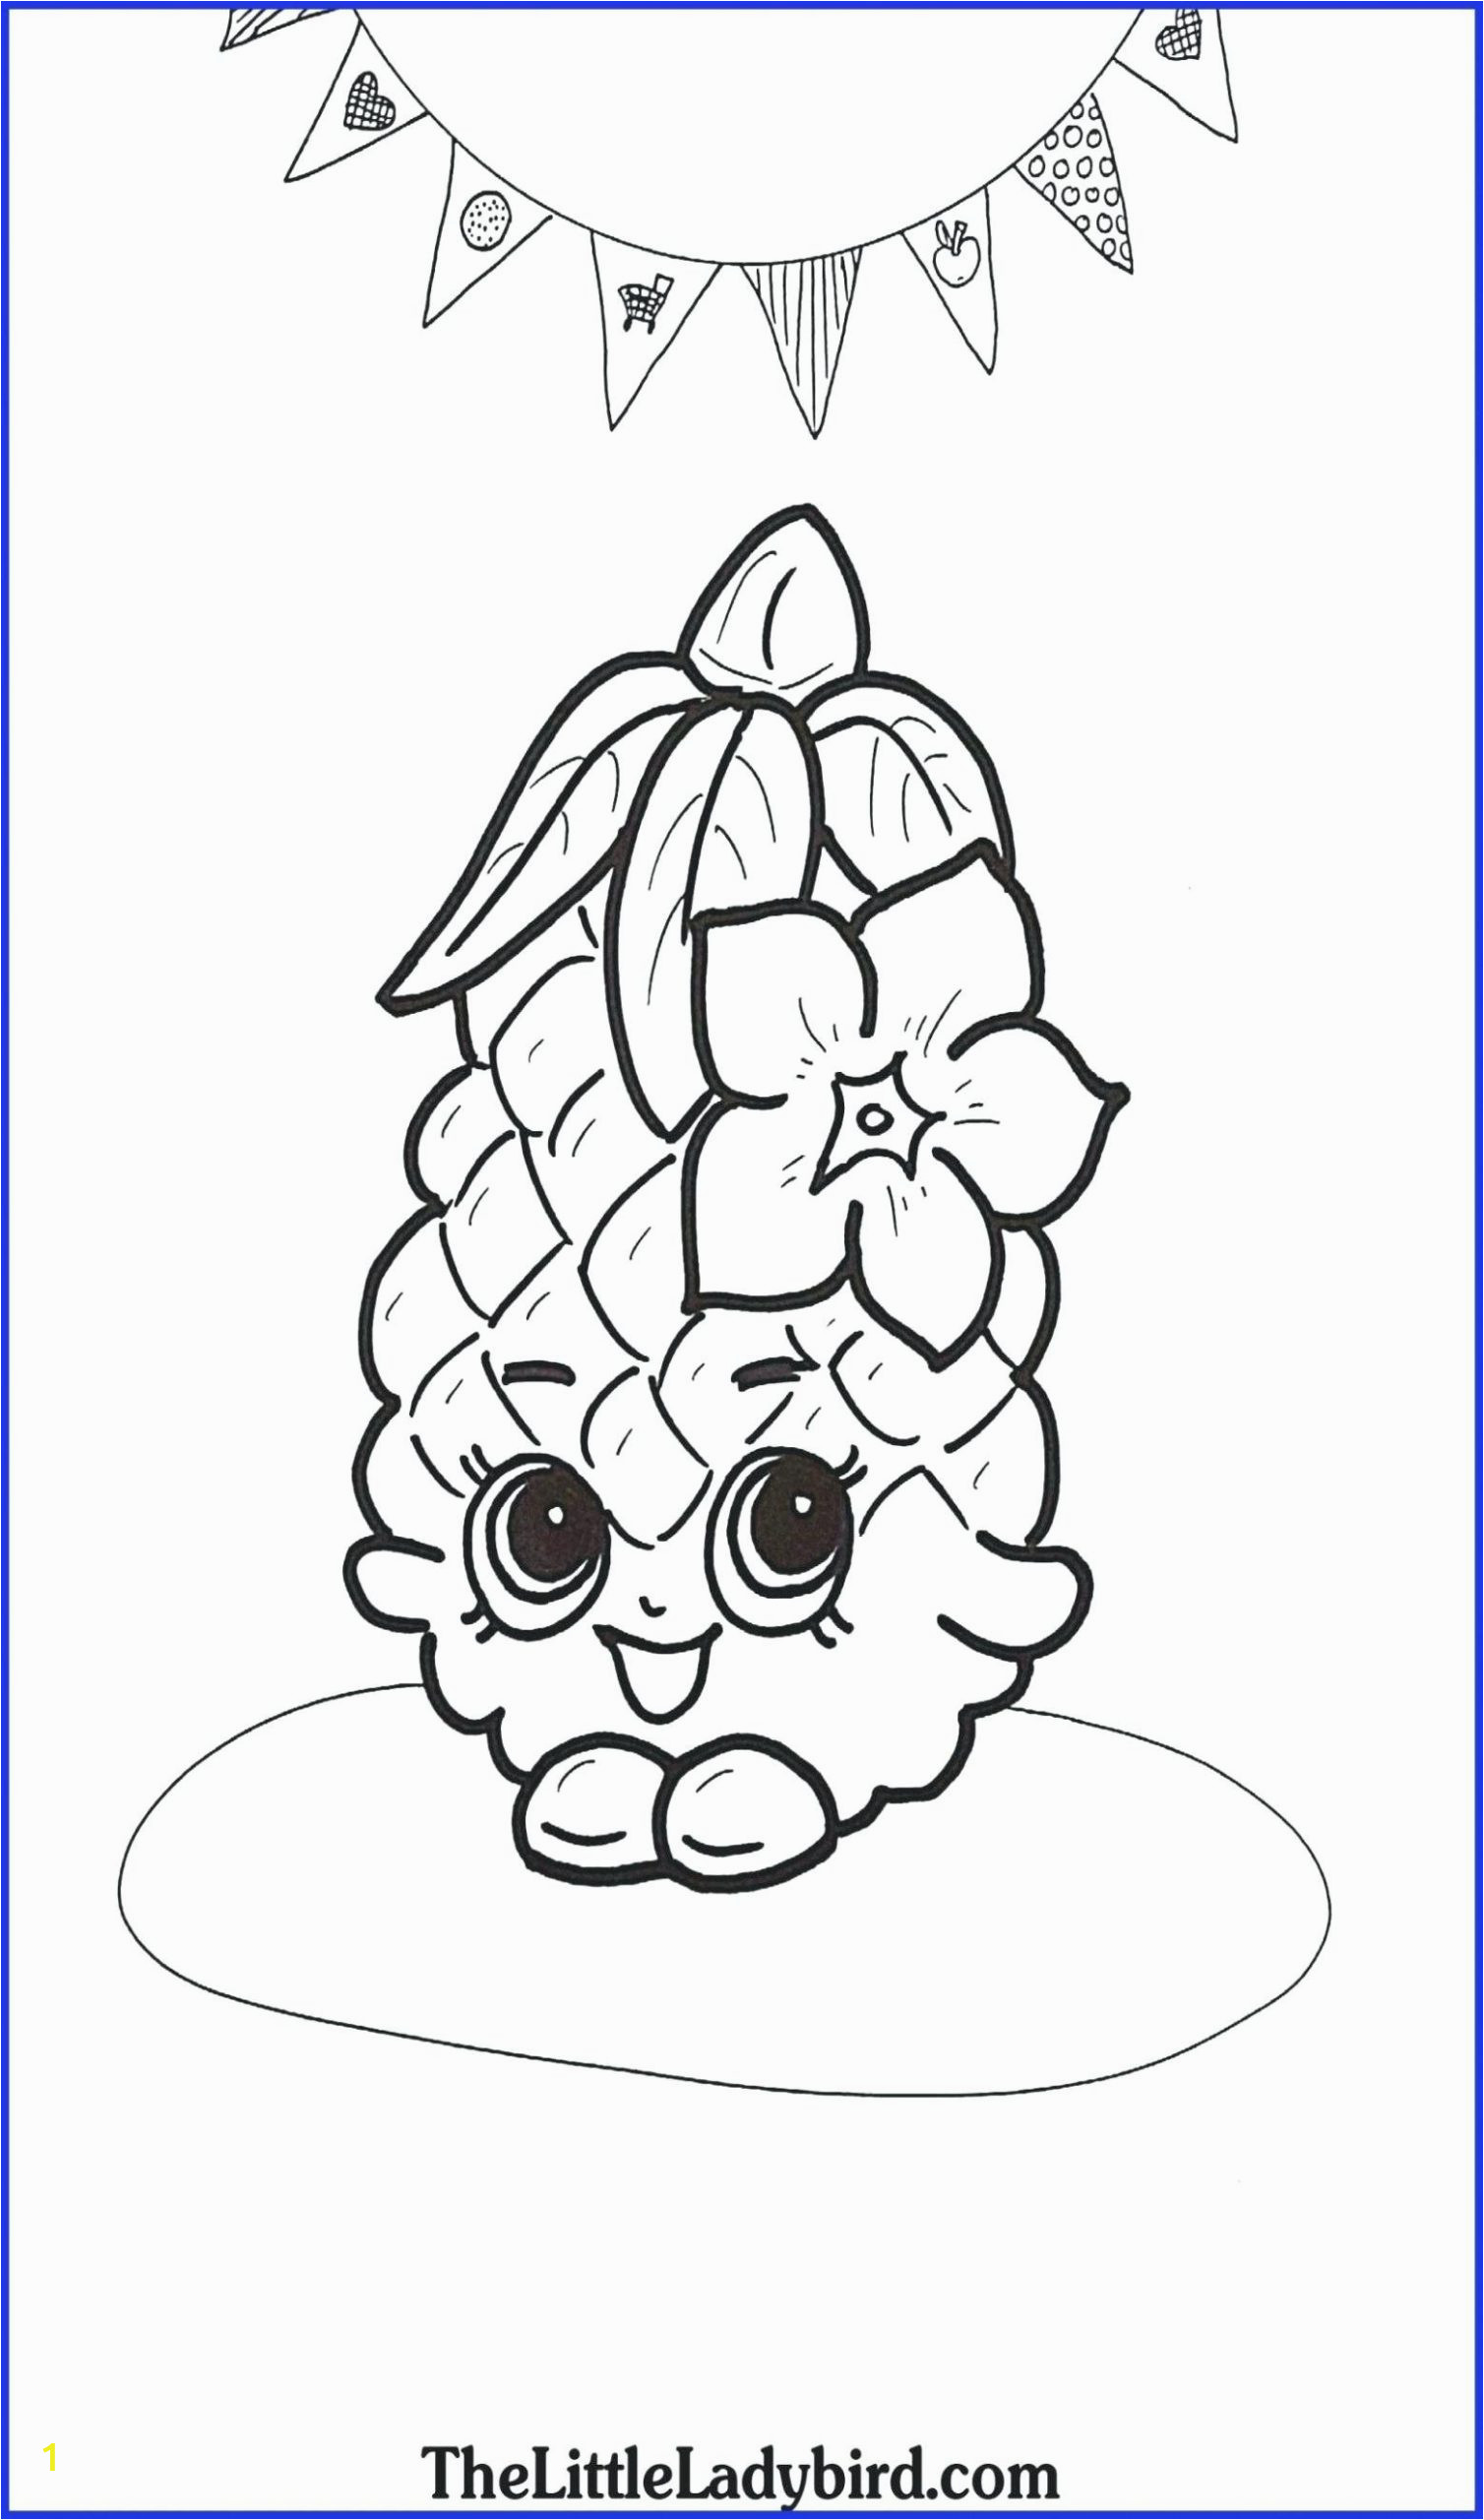 pikmi pops jumbo coloring pages to print free printable for girls spiderman jumbong from kids source image spider man printing pictures and colour home ing book into scaled